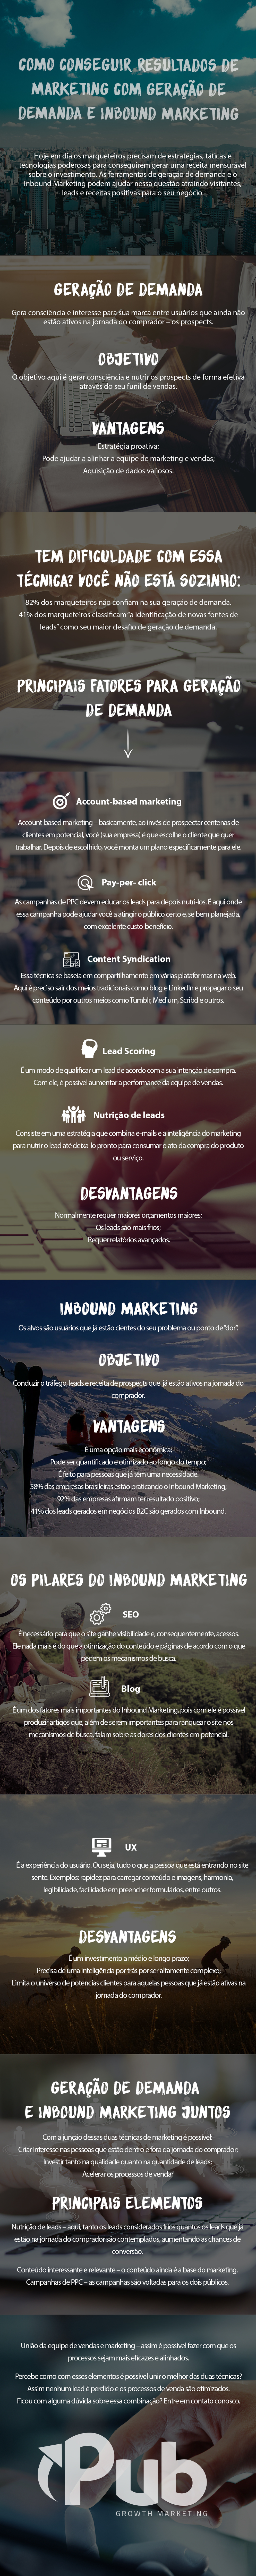 Marketing com Geração de Demanda e Inbound Marketing